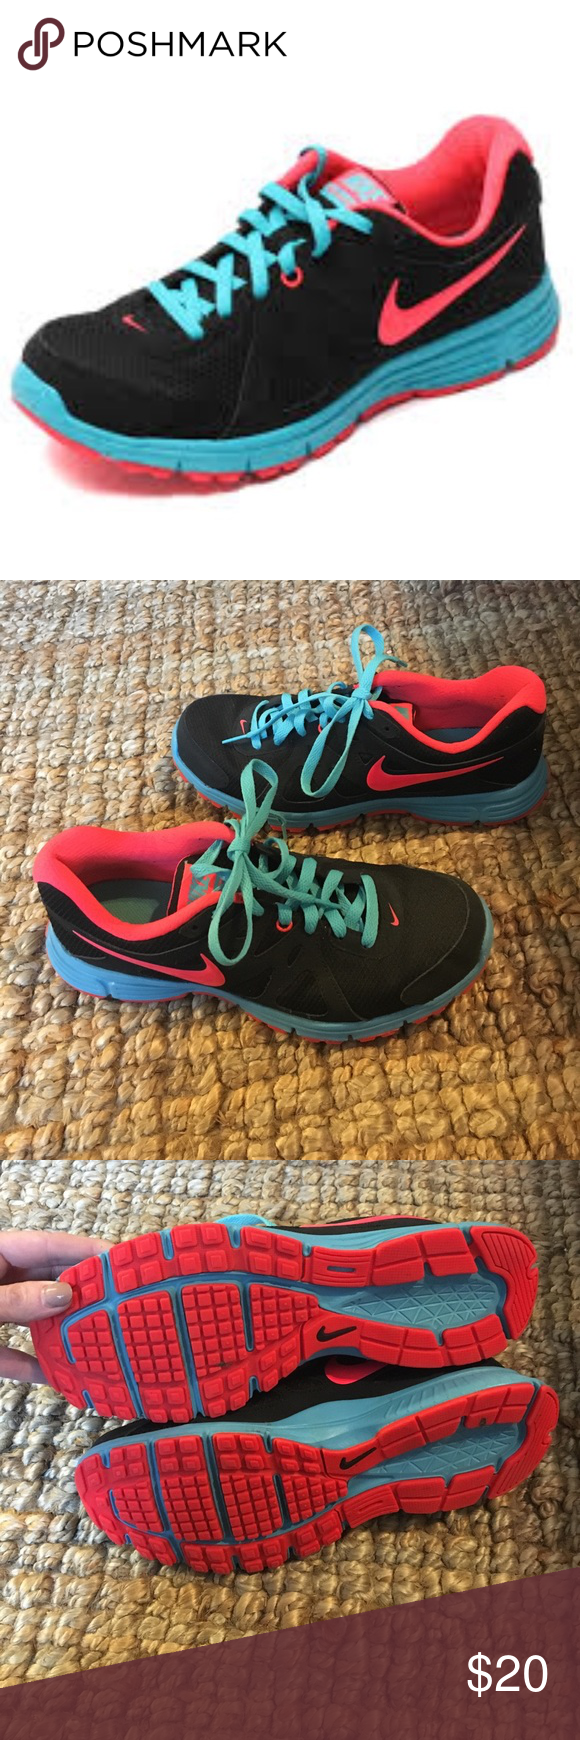 Nike Revolution sz9 Almost perfect condition. Nike Shoes Athletic Shoes